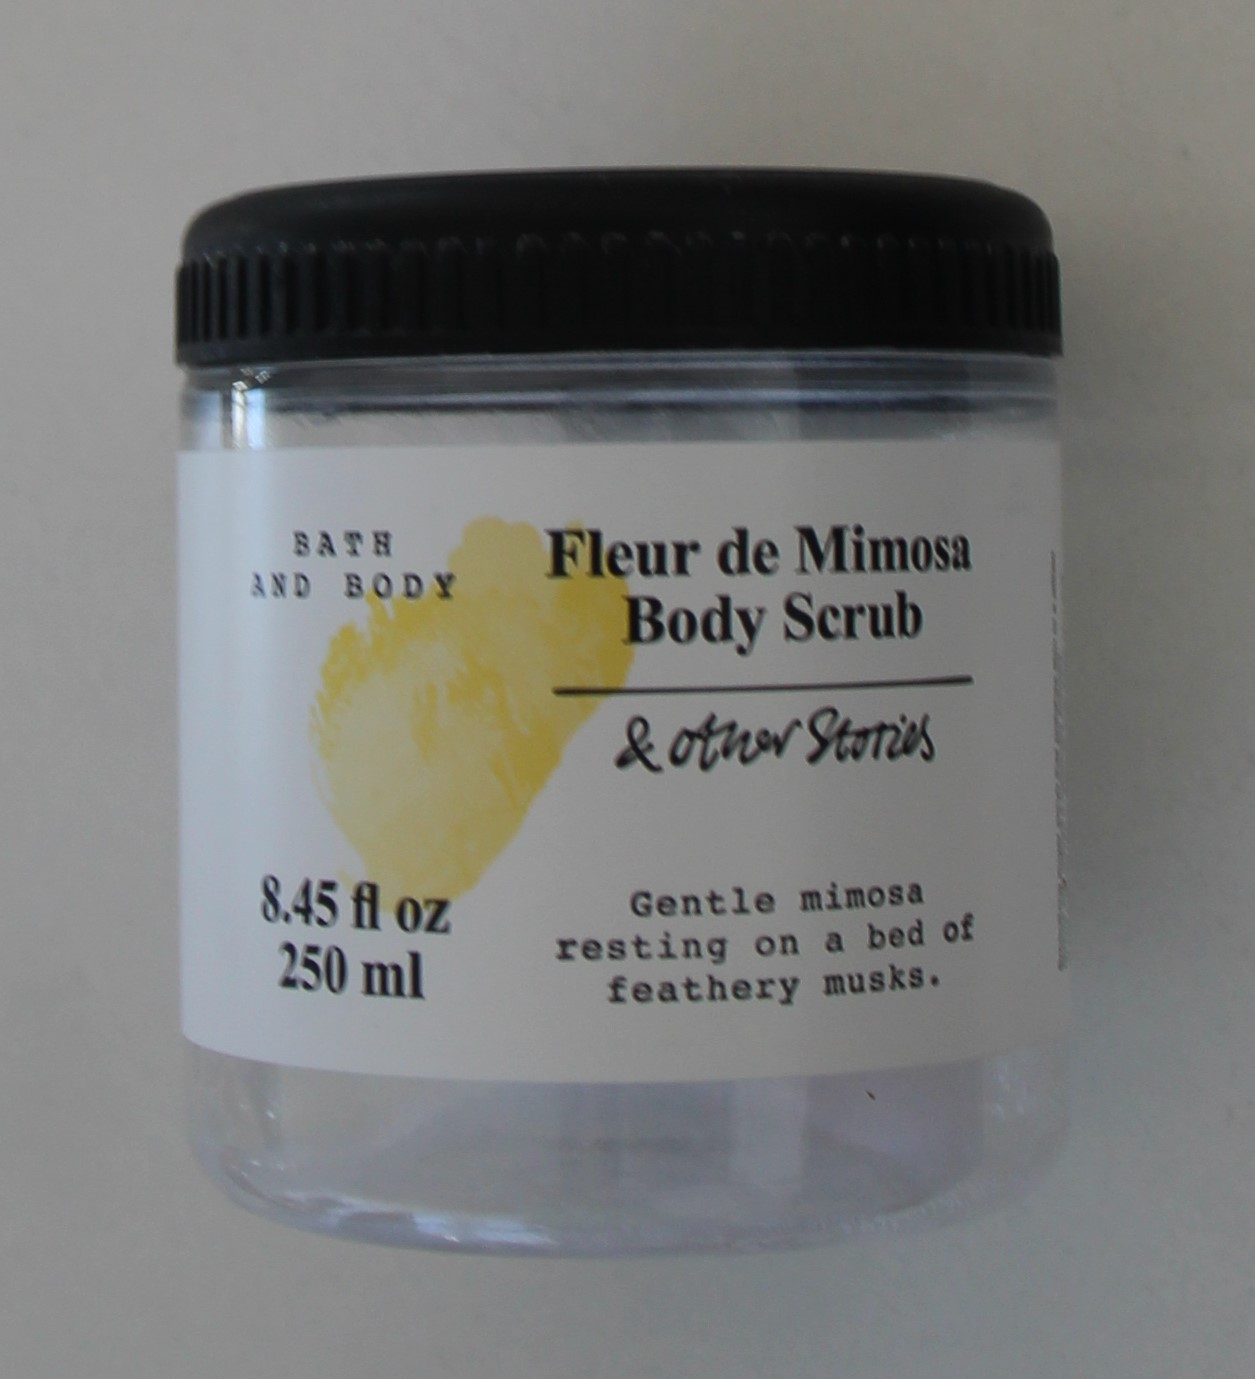 Fleur mimosa body scrub other stories dismoicéline